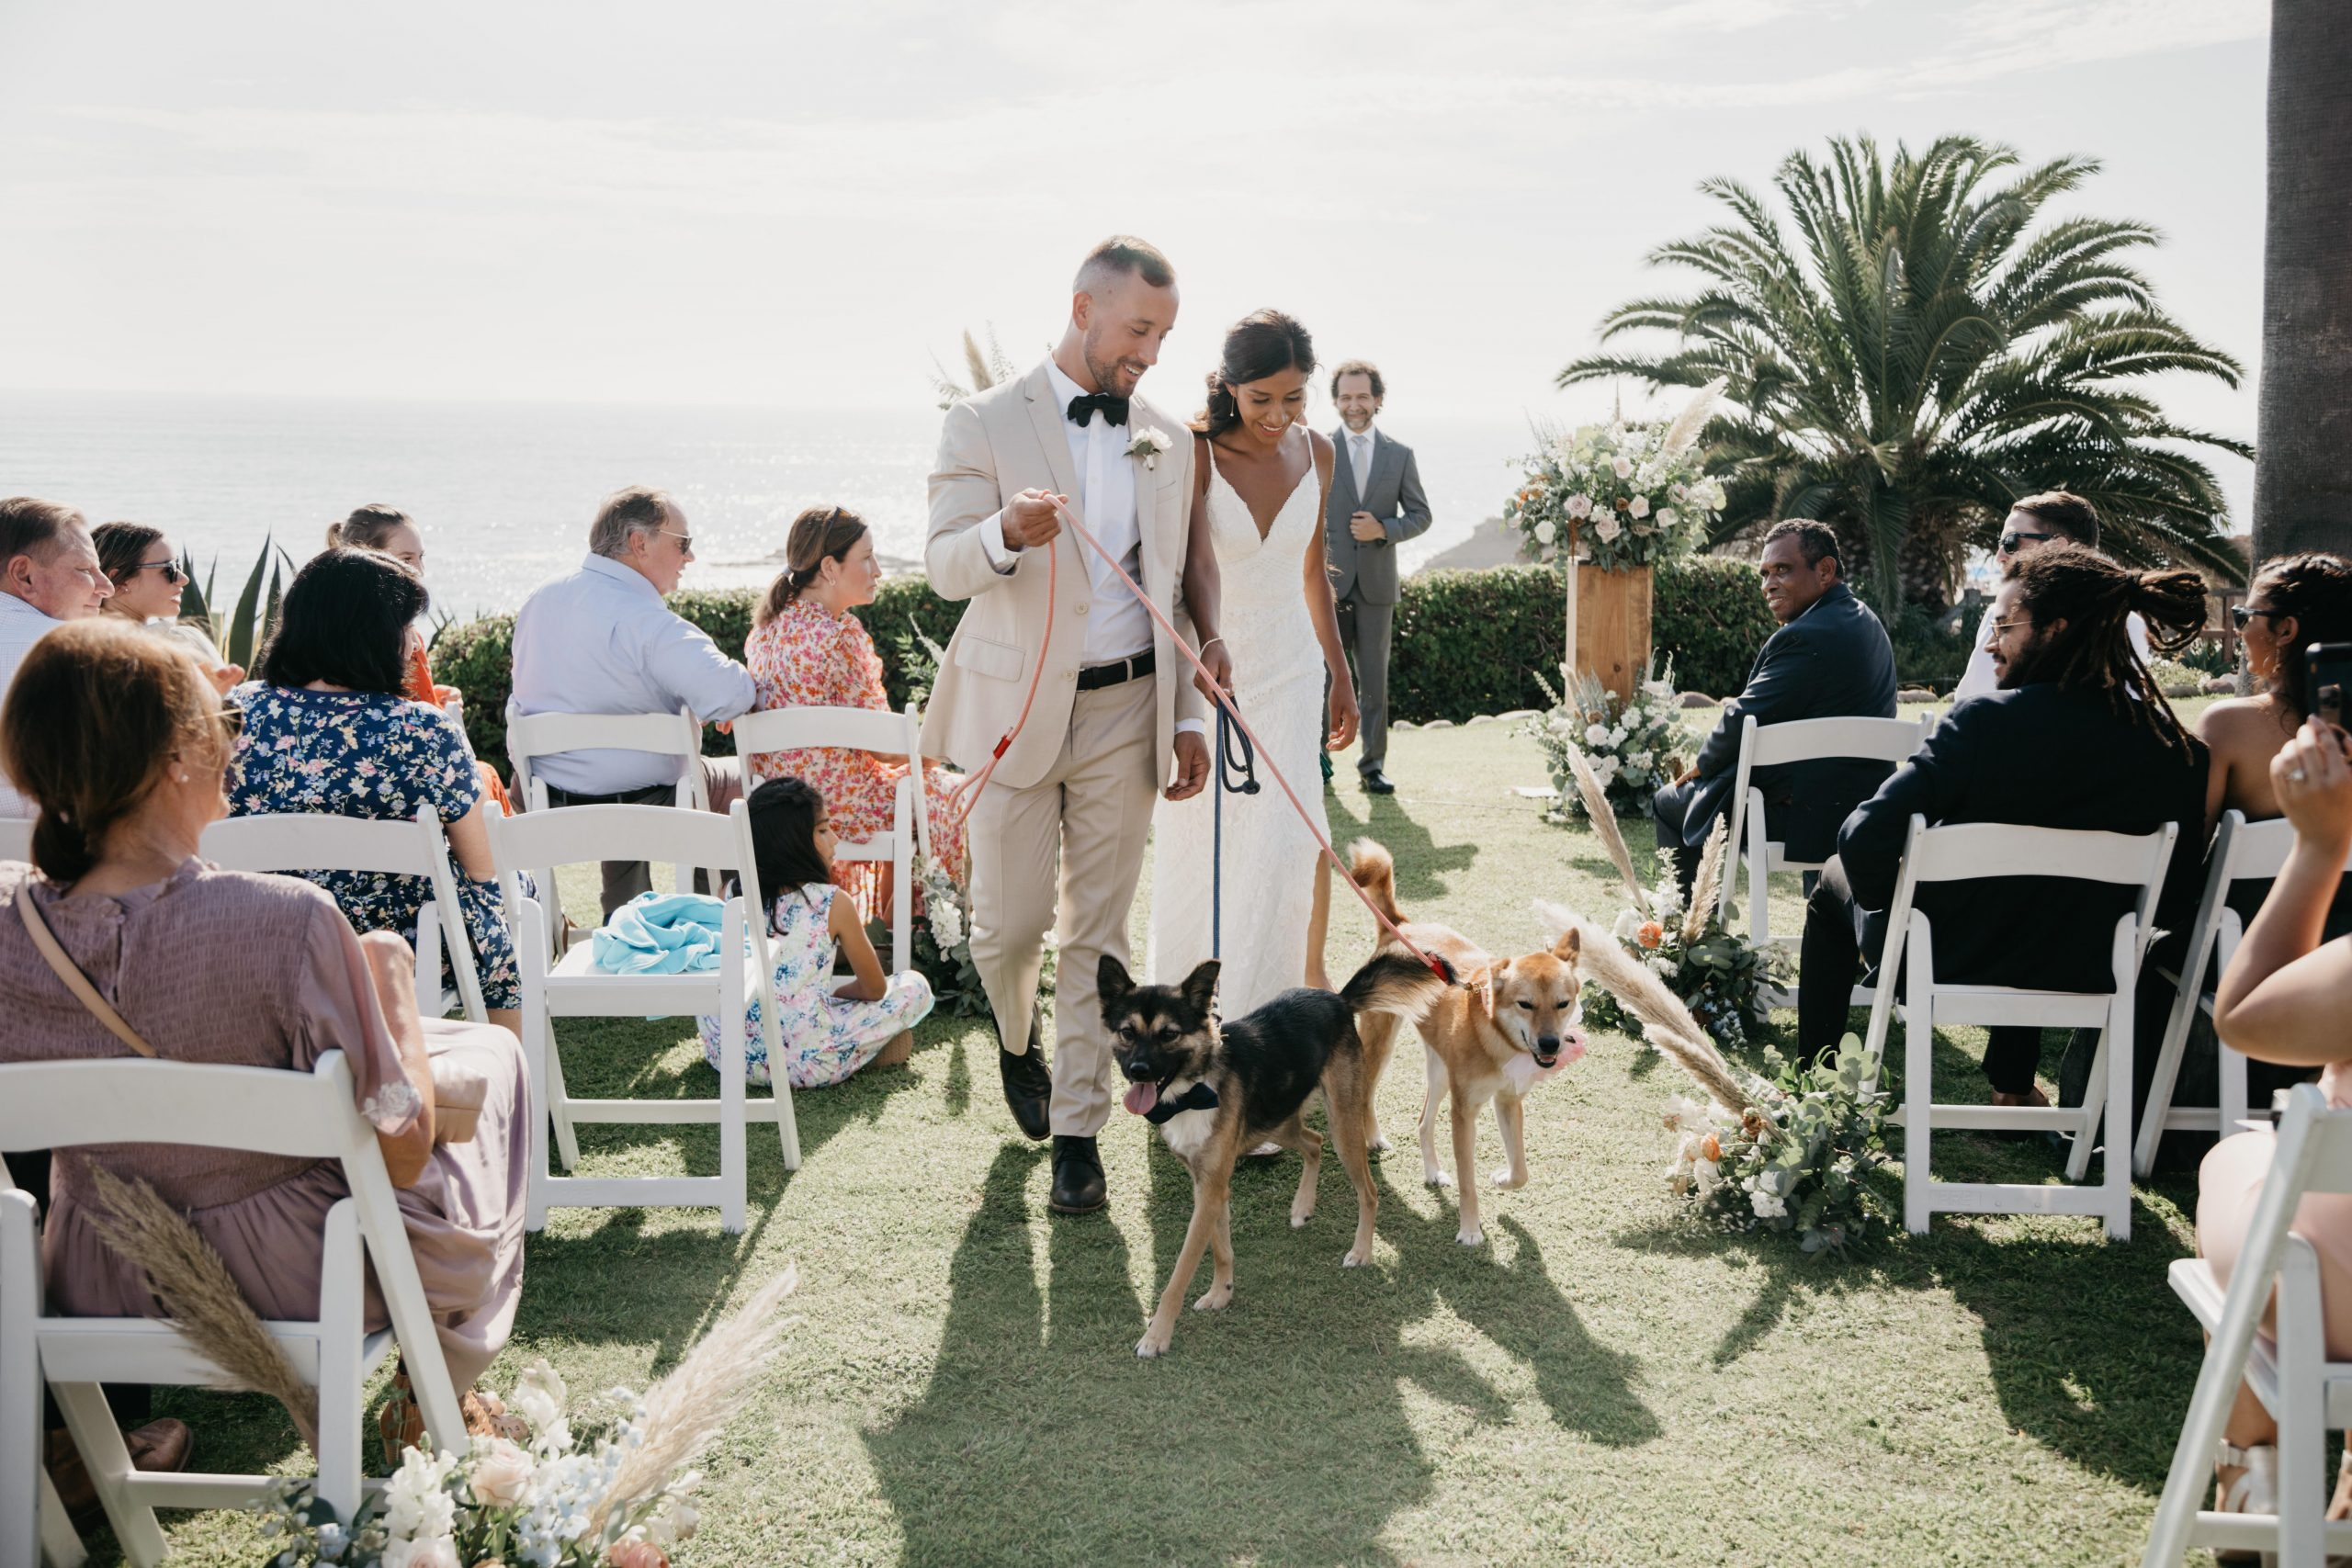 The Montage Laguna Beach Wedding, Couple walk down aisle with dogs, image by Fatima Elreda Photo